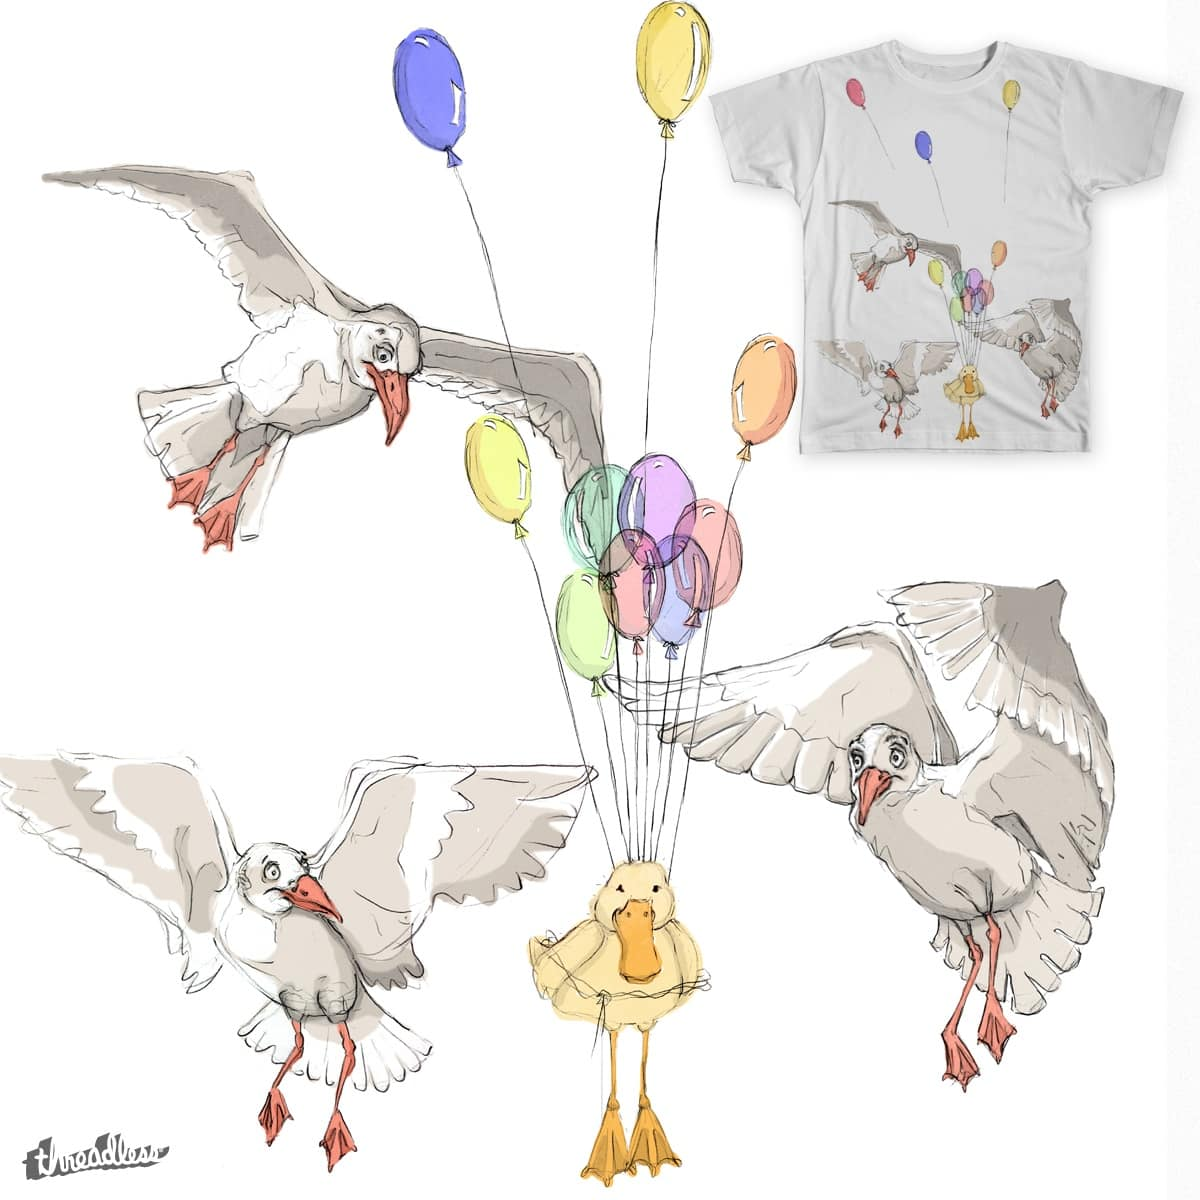 Nothing Imposible by cendeyn on Threadless